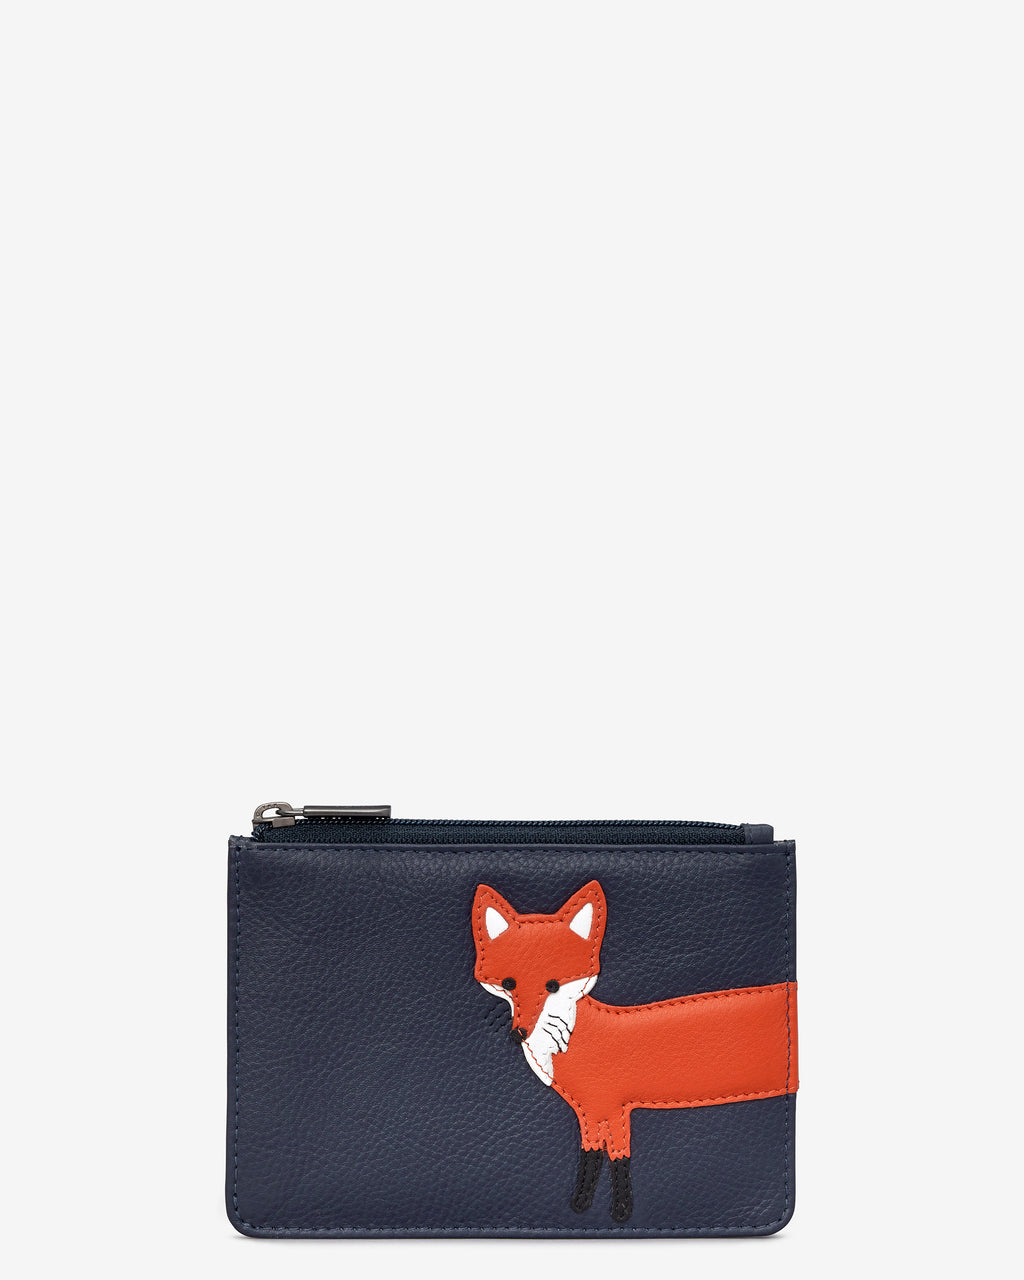 Fergus The Fox Zip Top Leather Purse